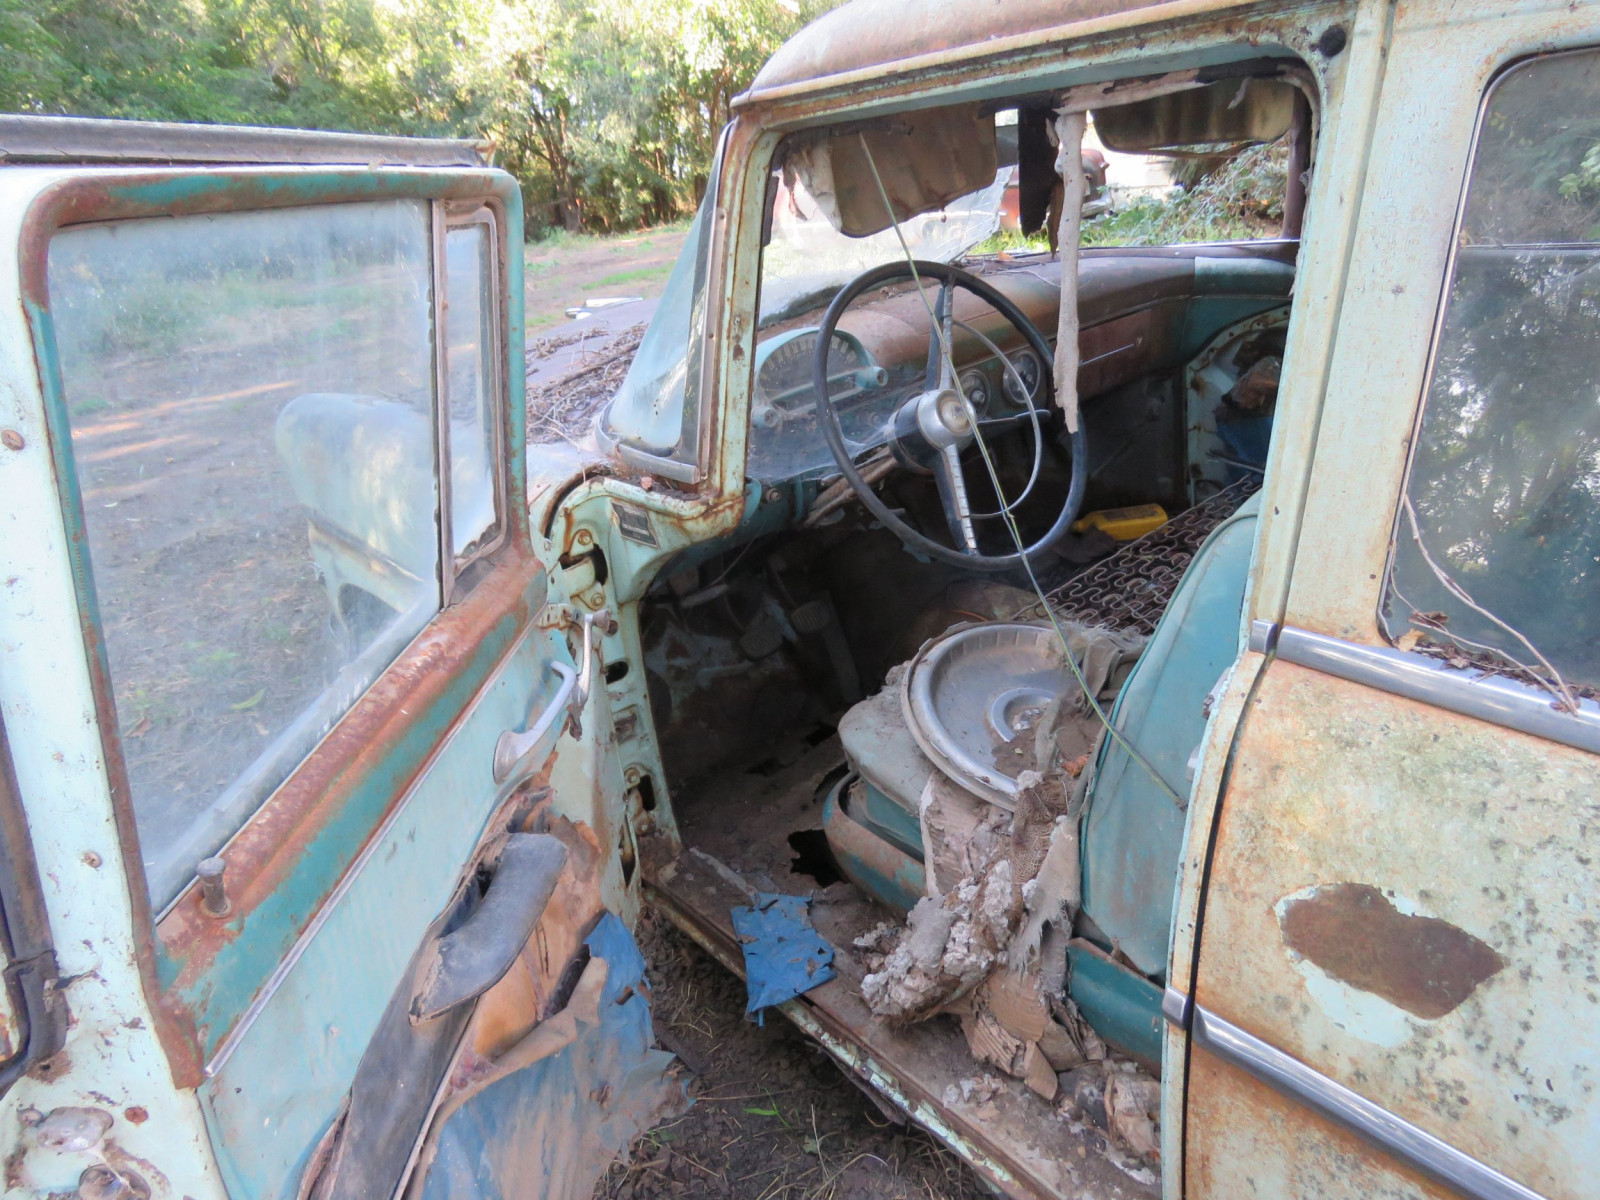 1955 Ford Customline 4dr Sedan for Project or Parts - Image 3